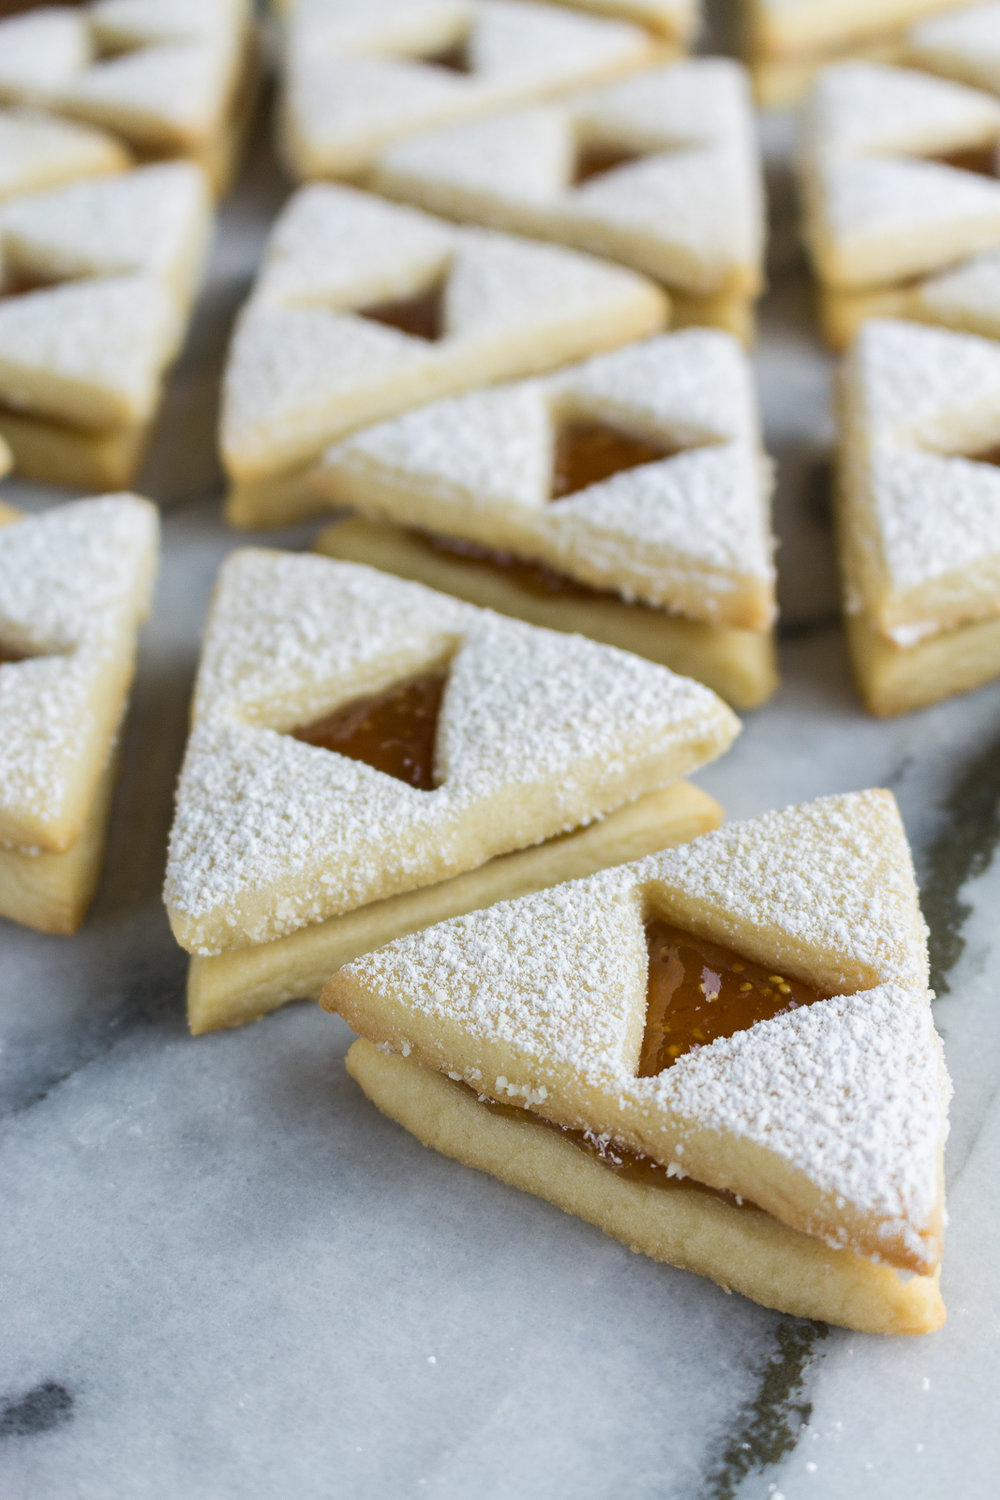 triforce-linzer-cookies-12.jpg